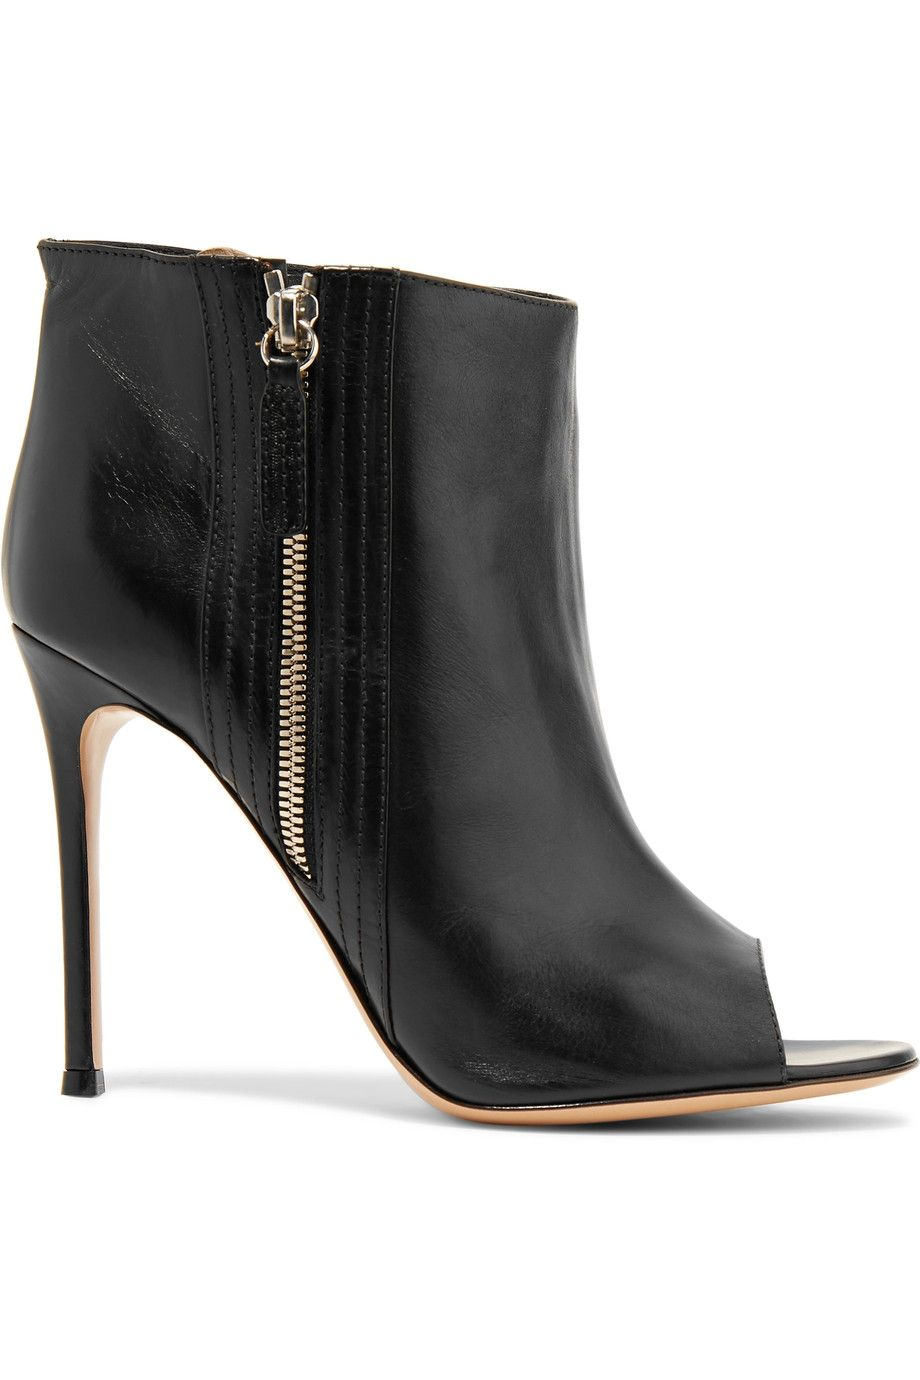 GIANVITO ROSSI Leather Ankle Boots. #gianvitorossi #shoes #boots